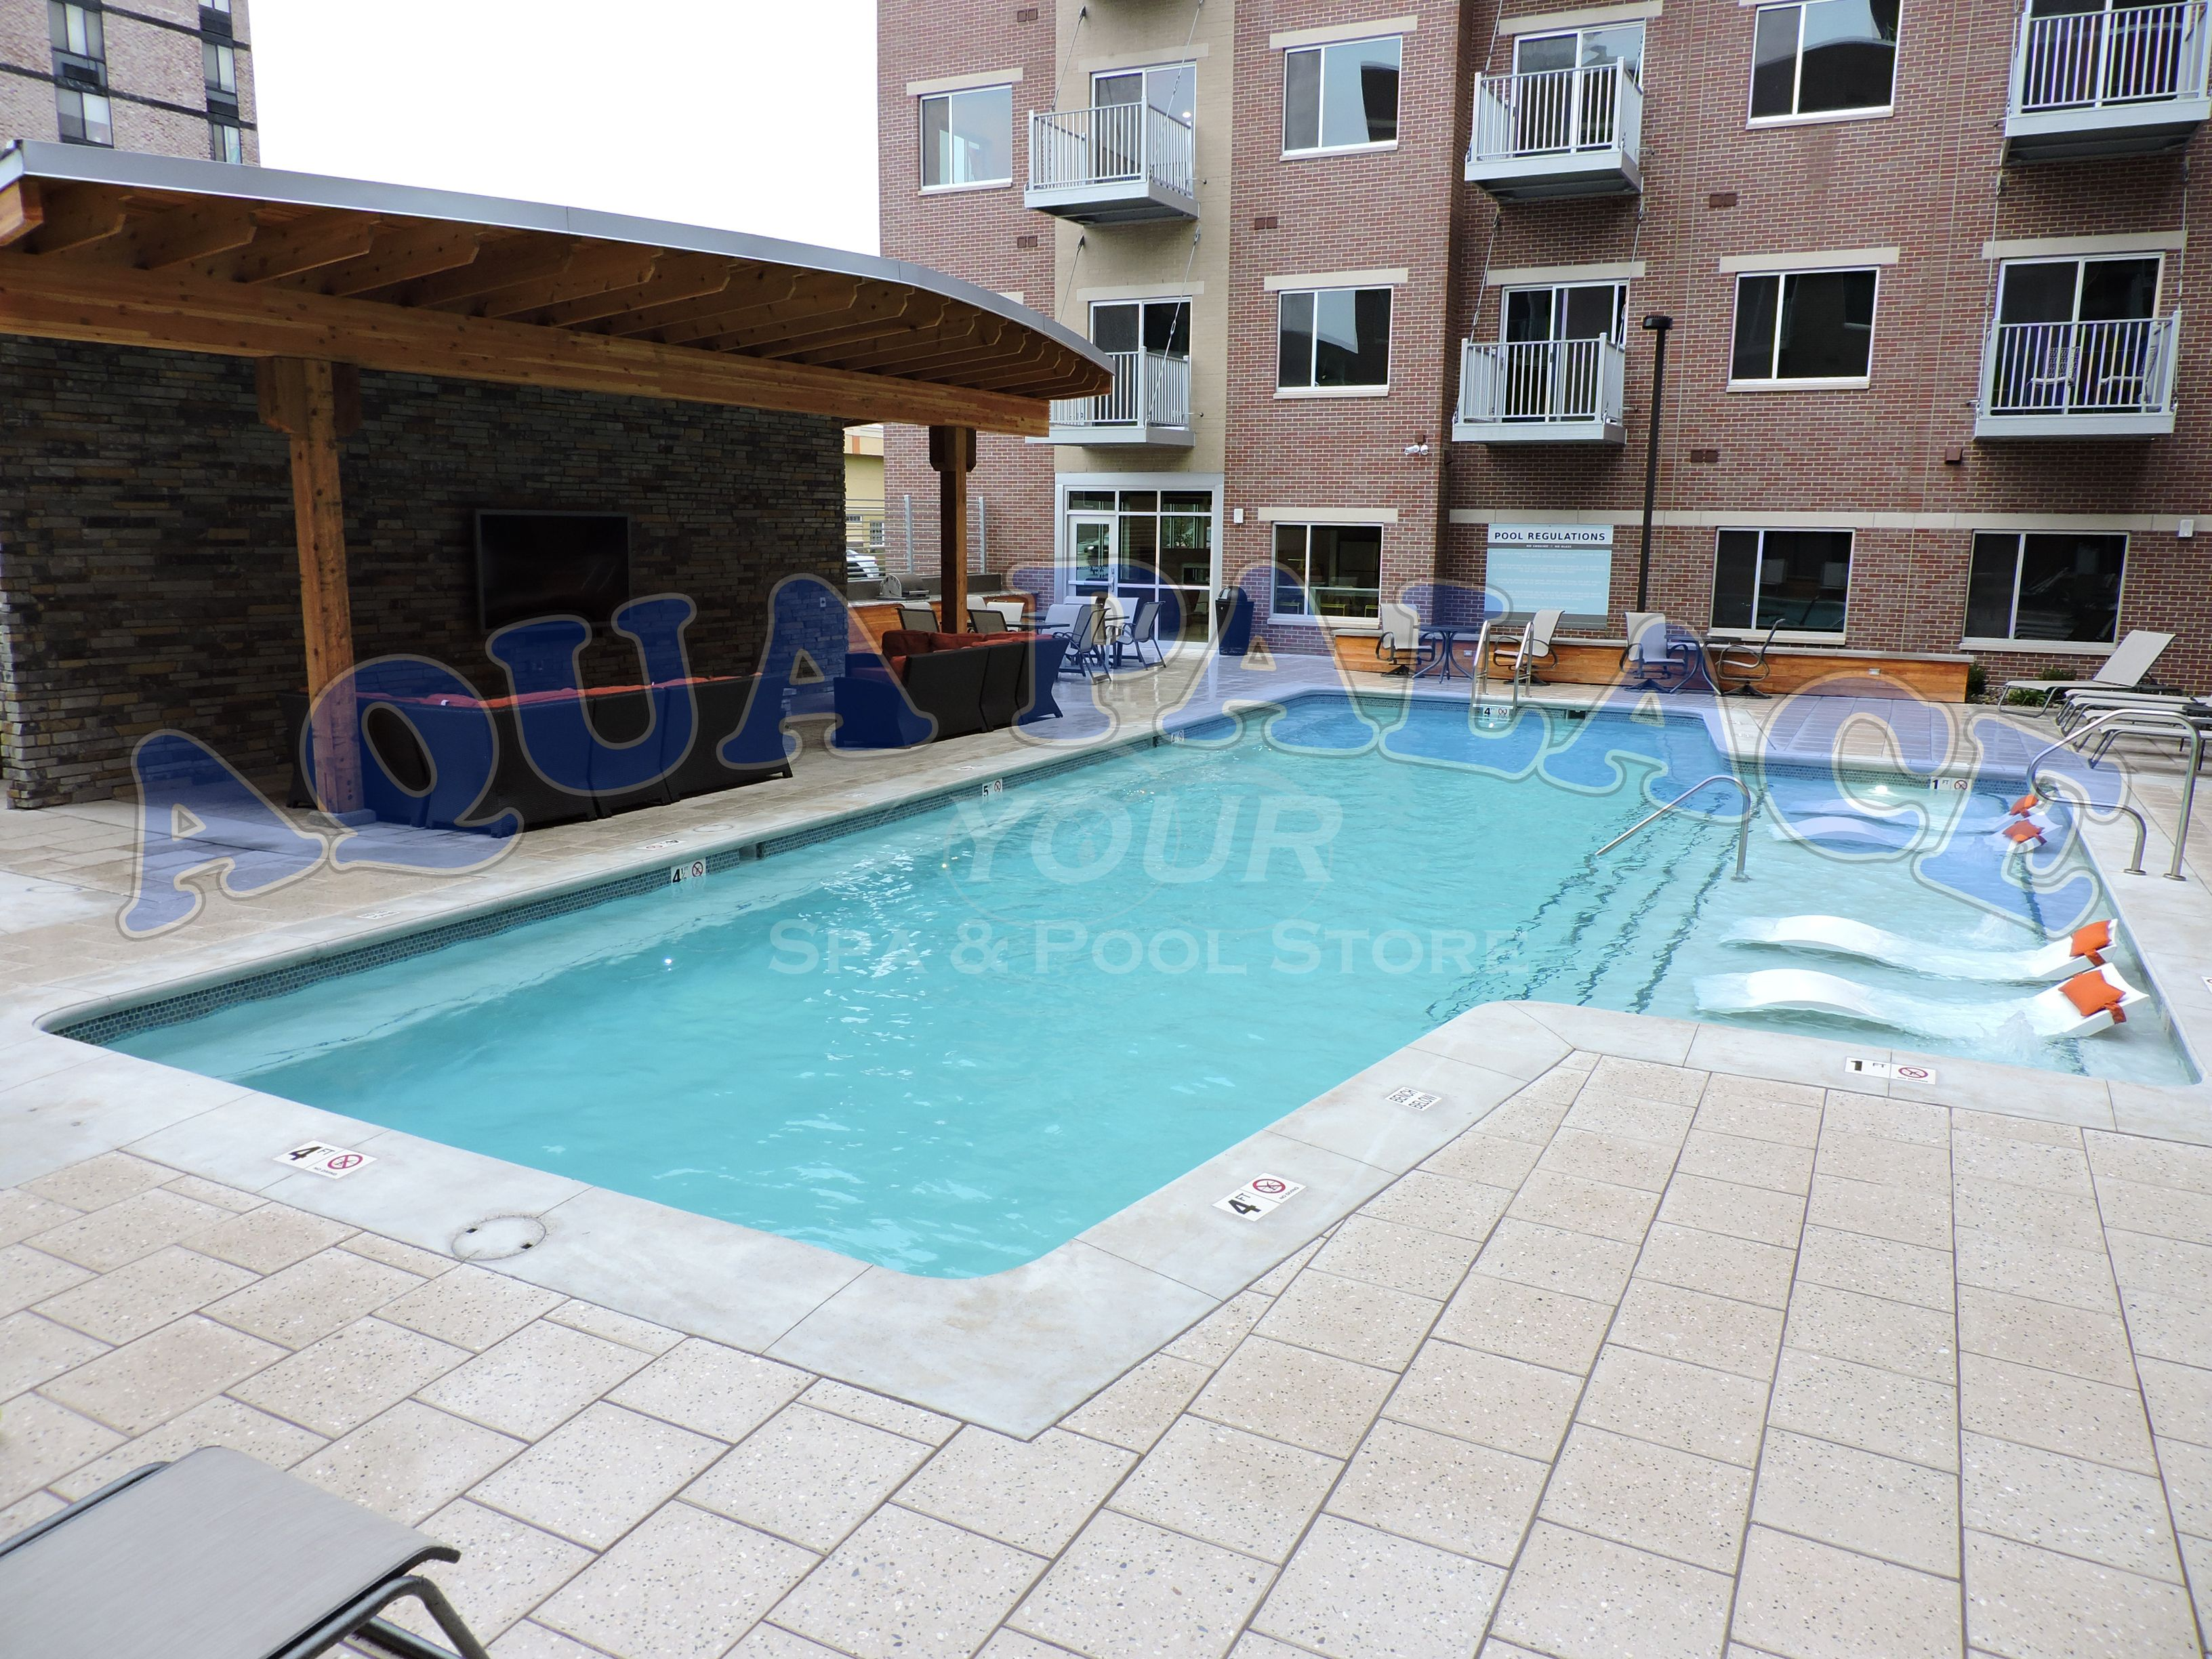 Custom Gunite Swimming Pool In Downtown Omaha NE Apartment Complex. Pool  Lighting, Tile Work